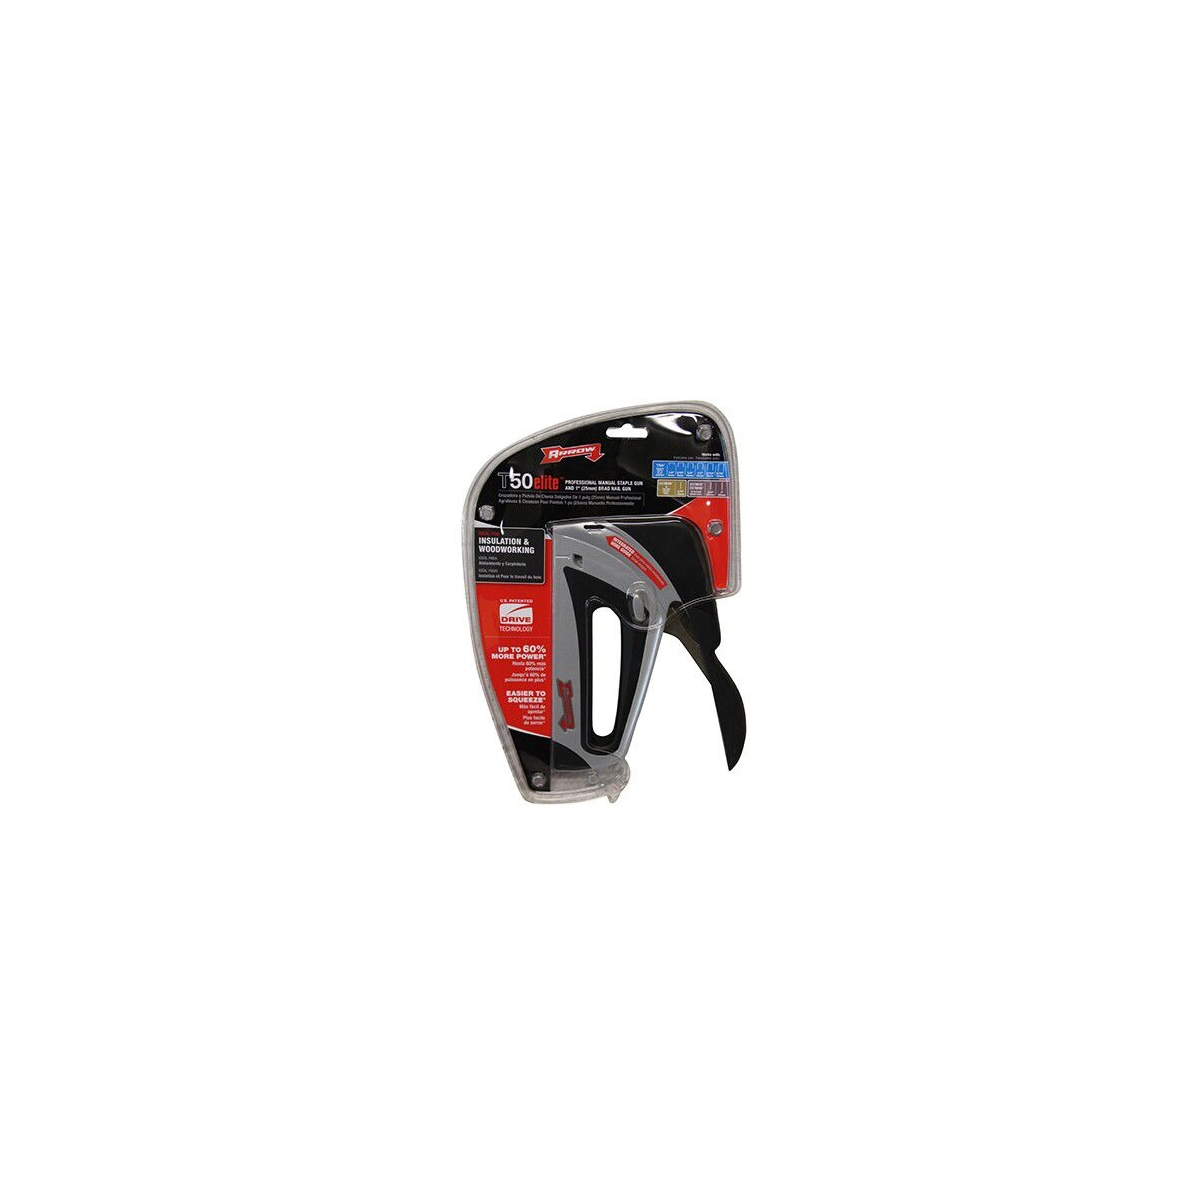 ARROW T50 ELITE STAPLE GUN (AT50ELITE)